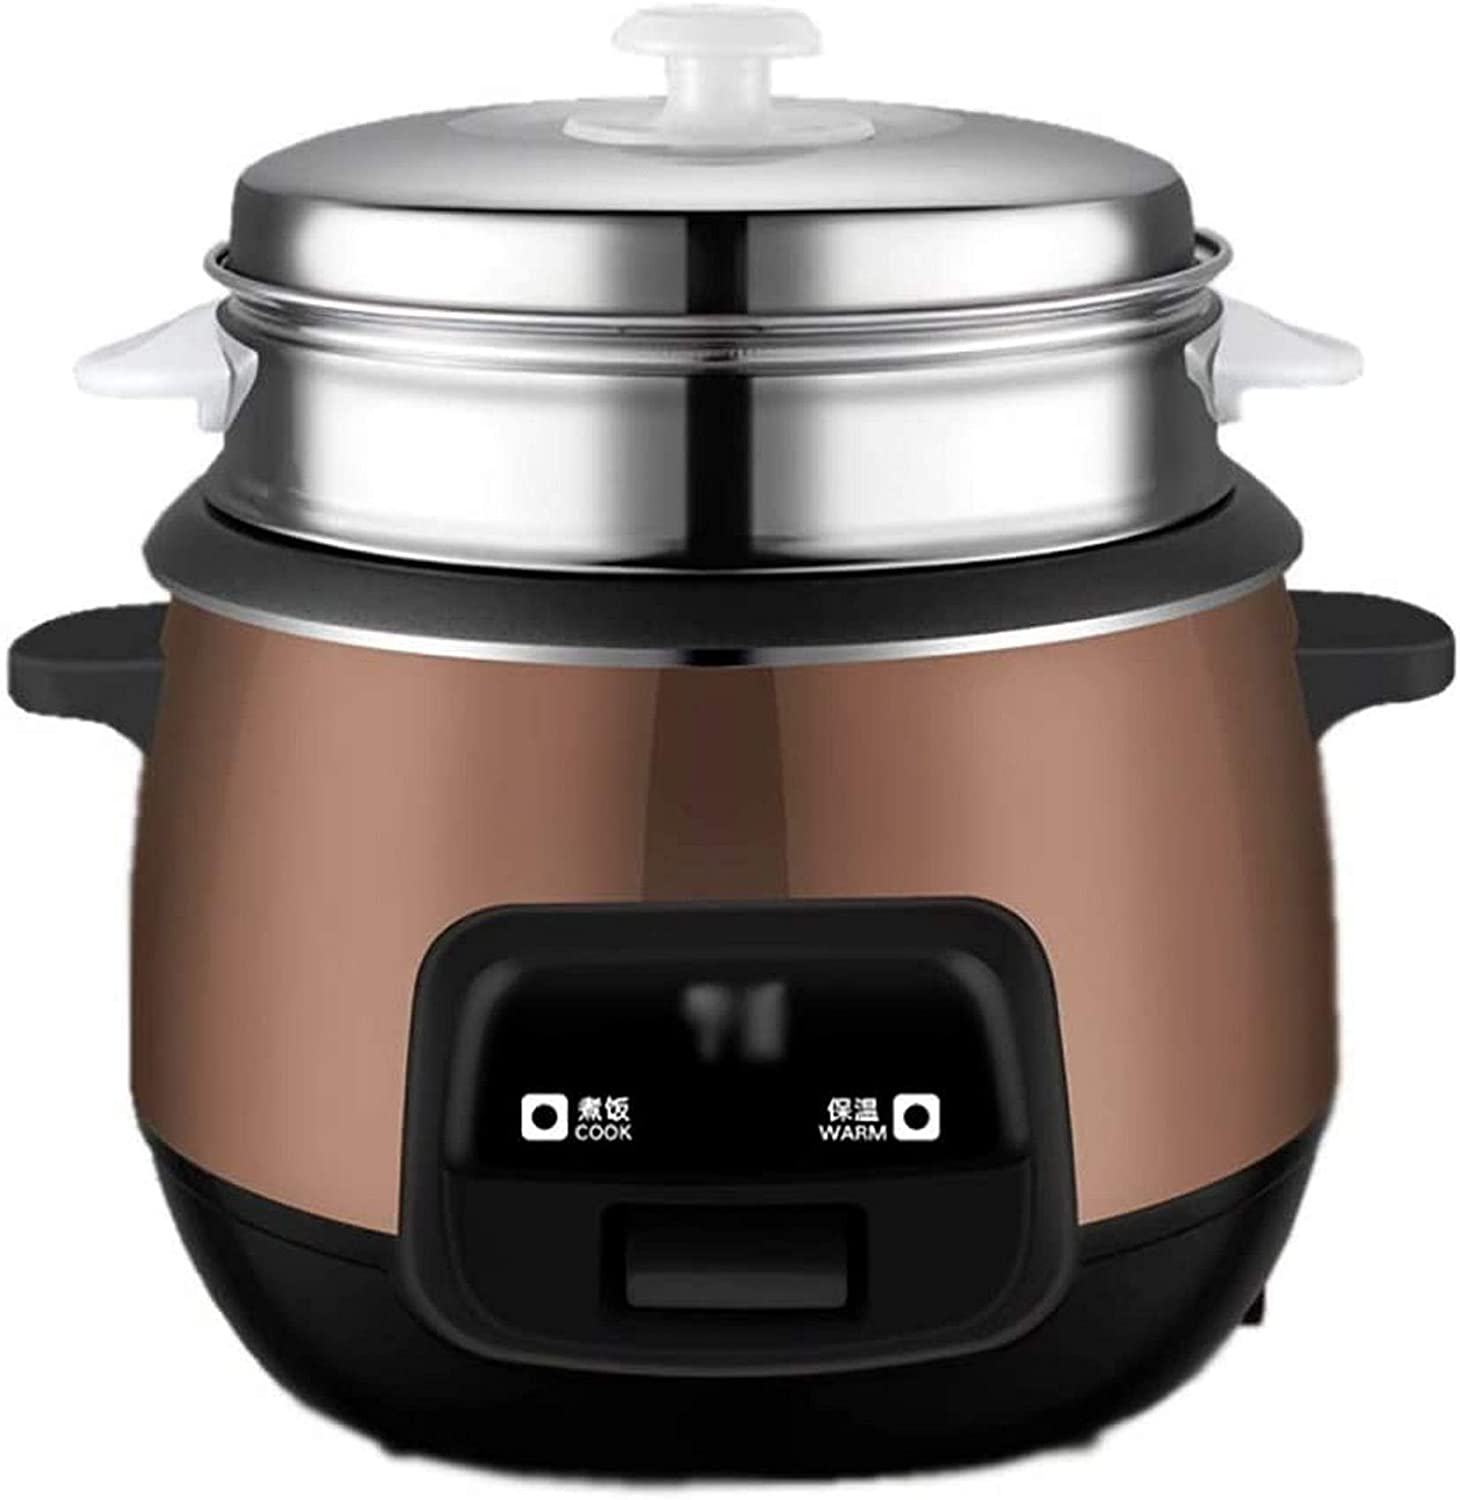 XH&XH Rice Cooker (1.5L-4L) Smart Home Insulation Quality Multi-Function Quality Internal Spoon Steamer and Measuring Cups Small appliances can accommodate up to 1-6 People (Color: Size B: 4L)